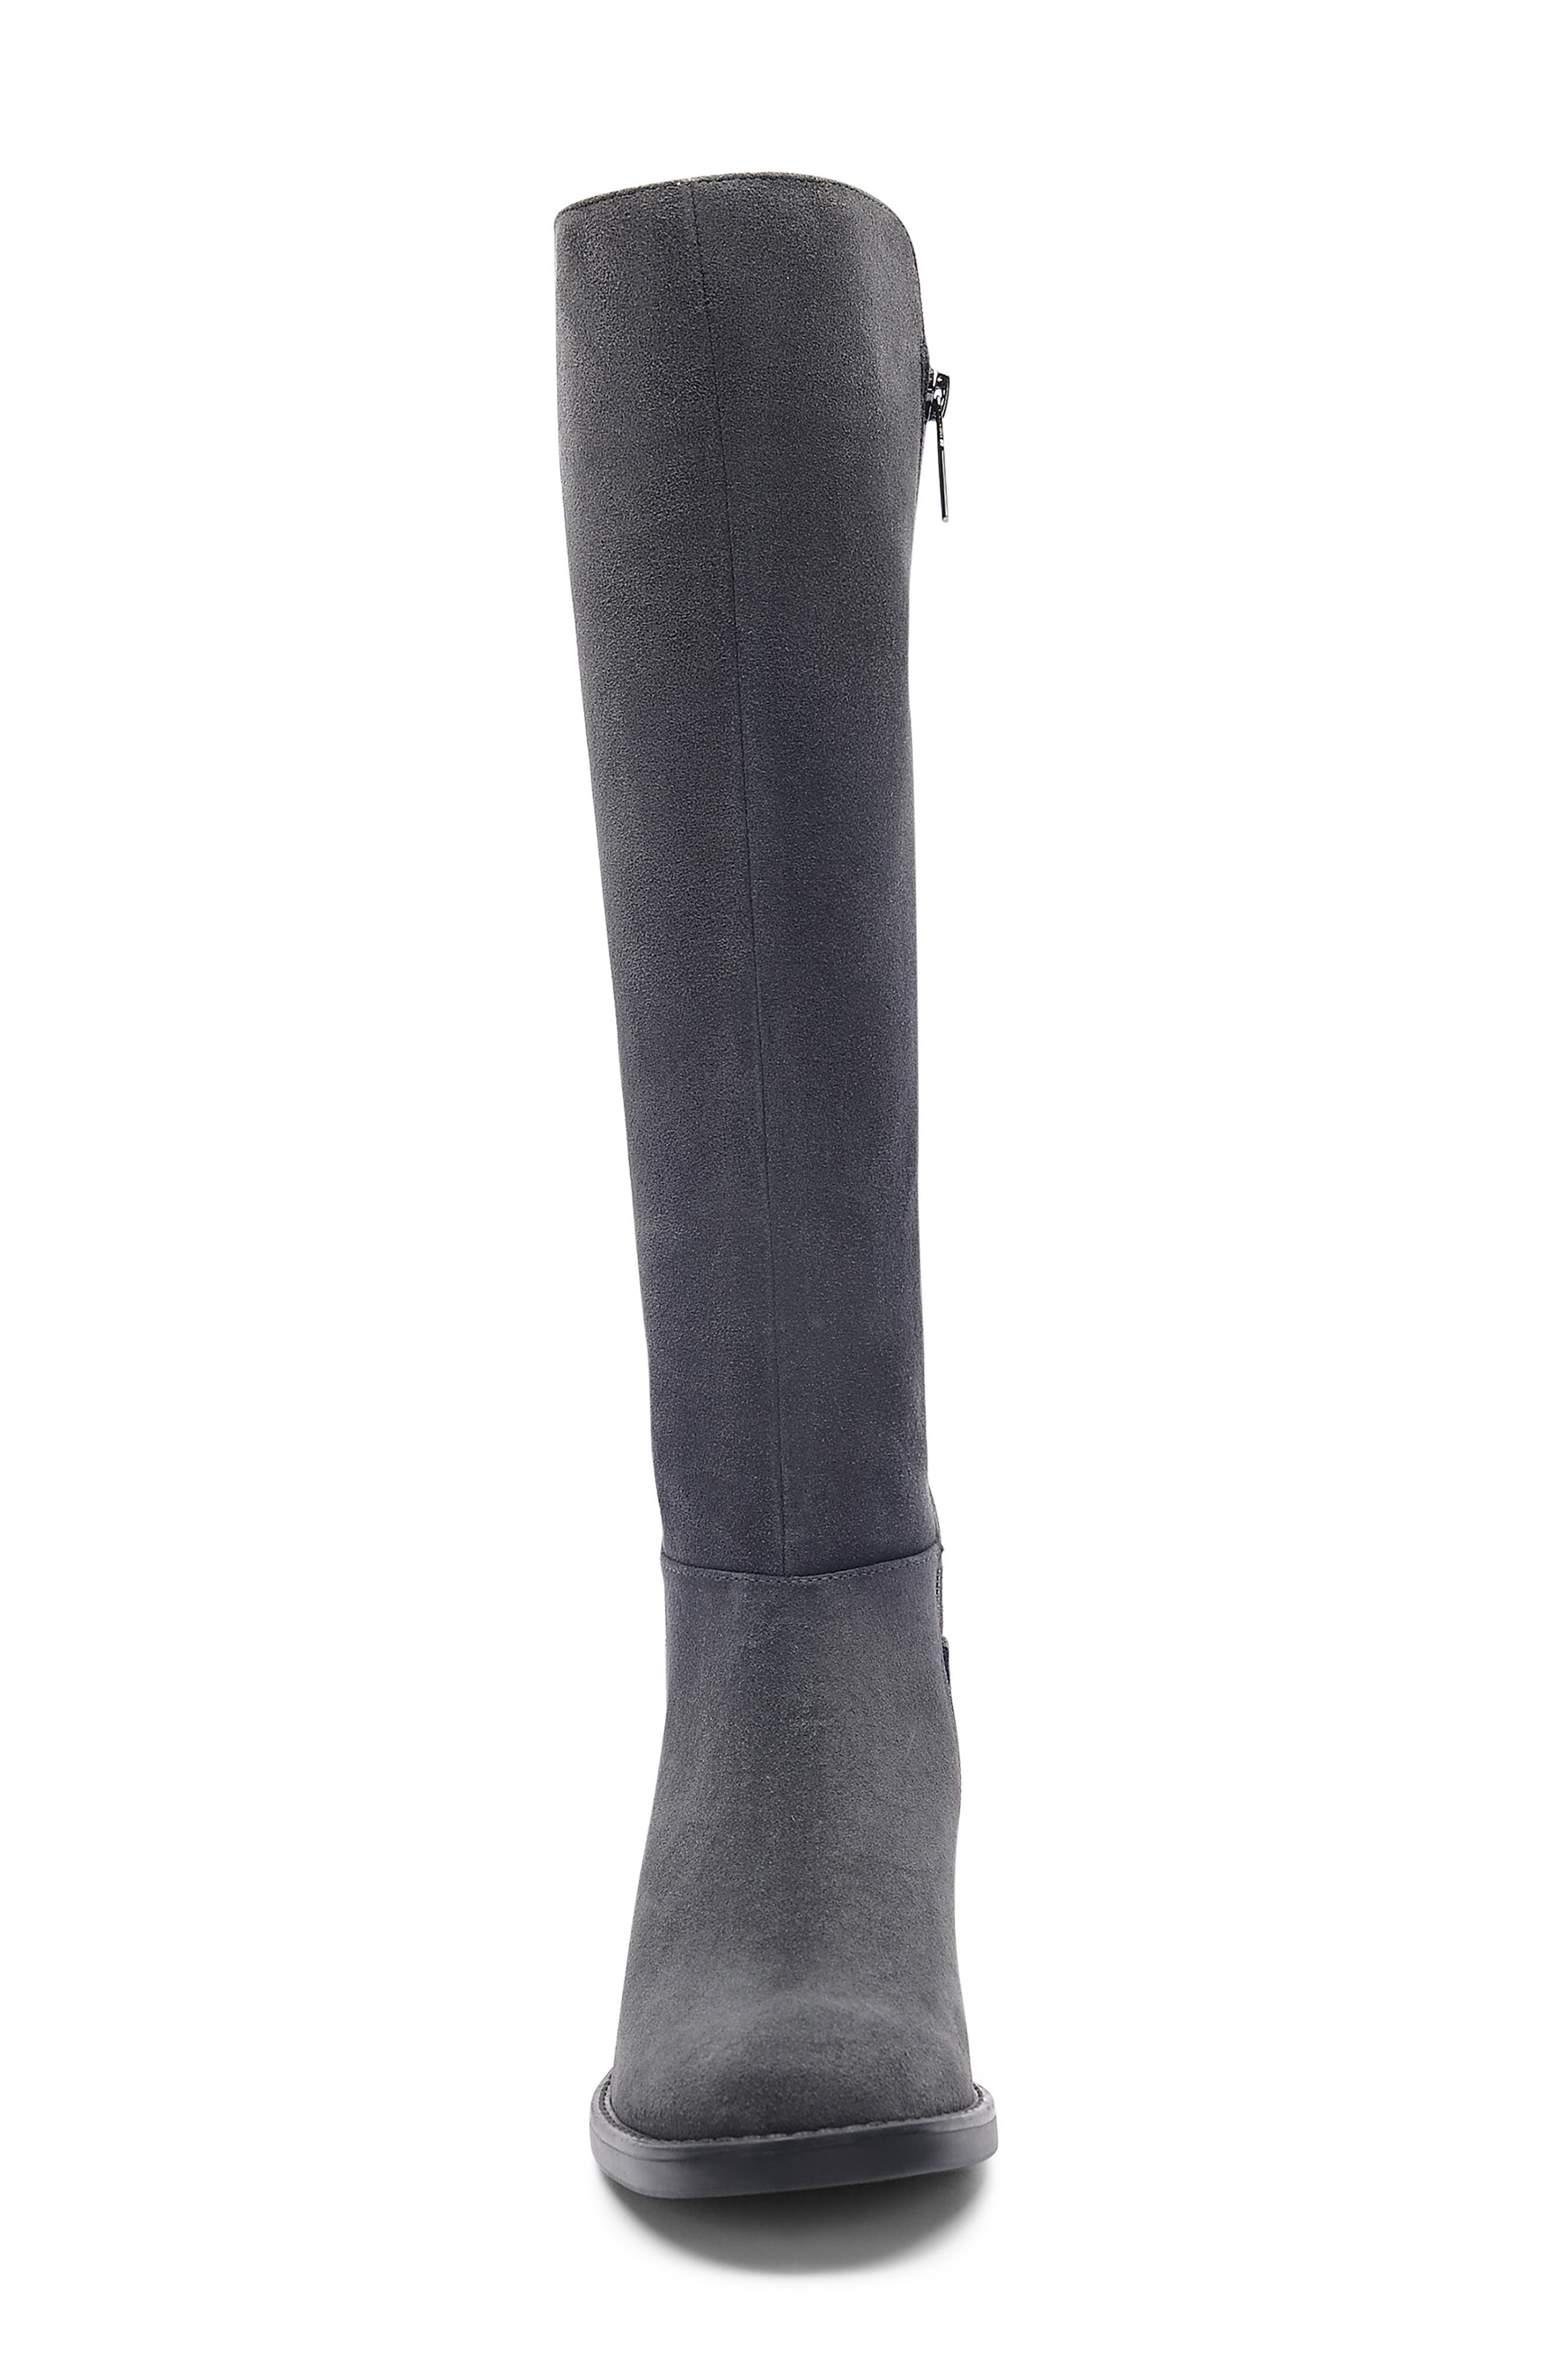 Ellie Waterproof Knee High Riding Boot,                             Alternate thumbnail 4, color,                             DARK GREY SUEDE